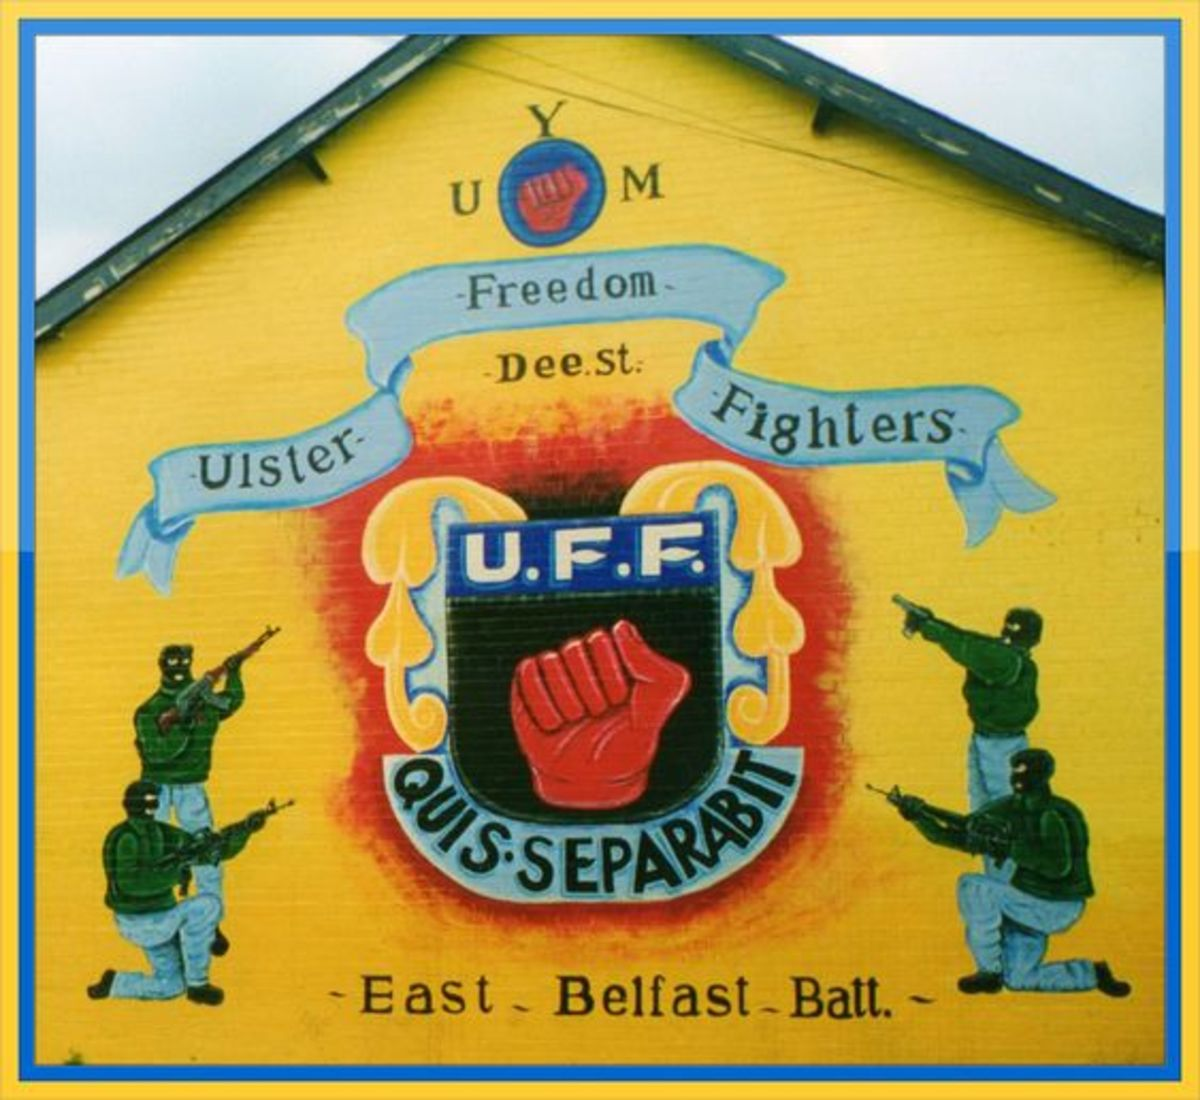 Loyalist mural in East Belfast dedicated to the UFF a cover name used by the Ulster Defense Association.